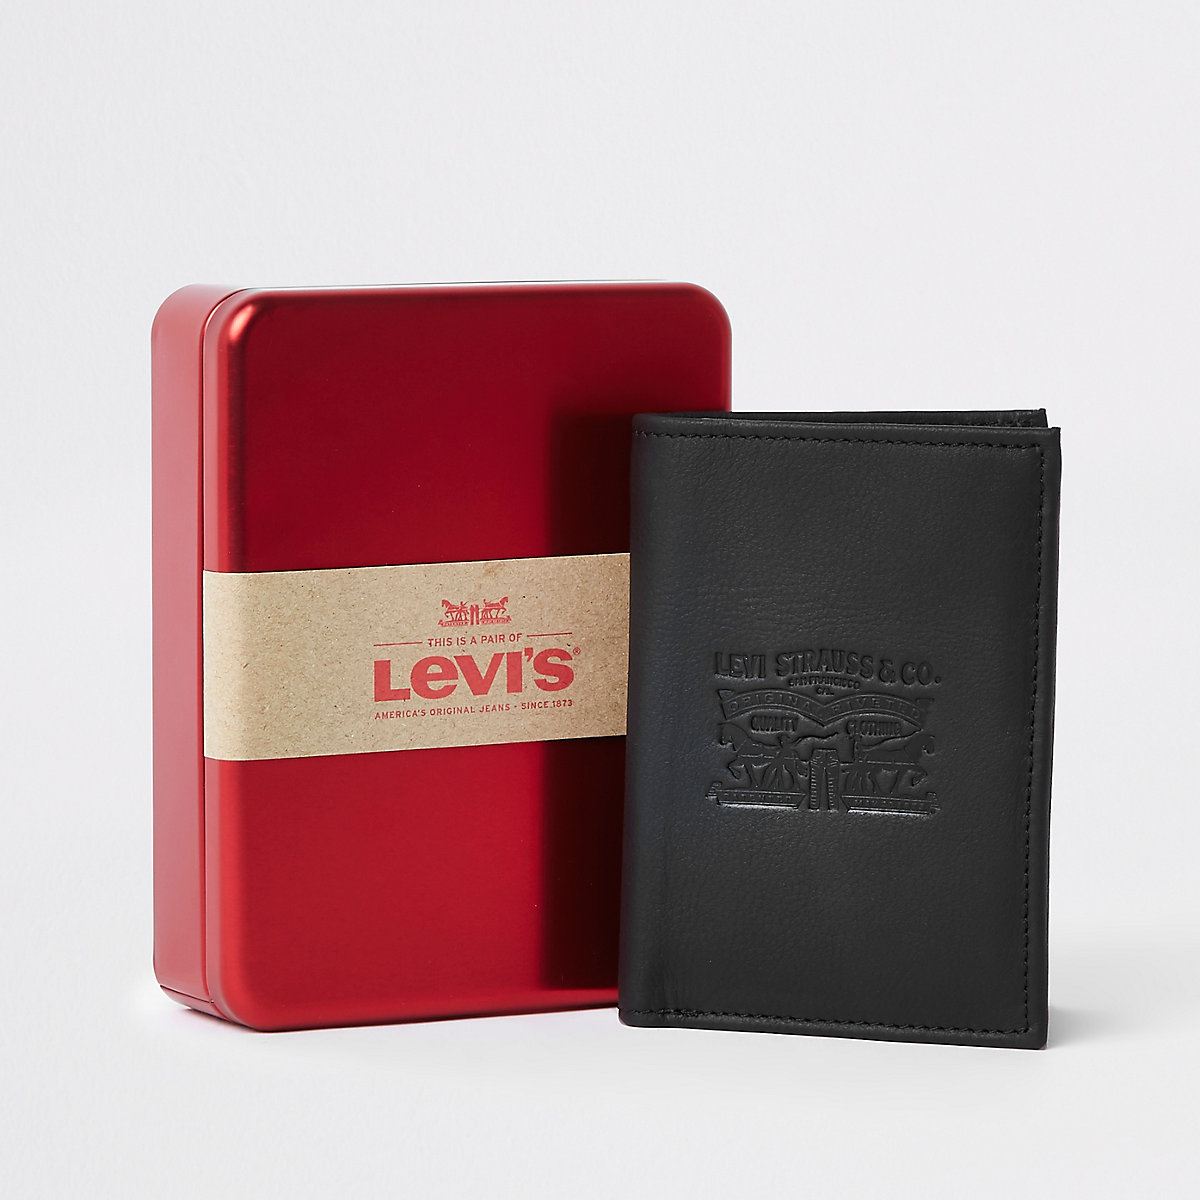 Levi's black leather horse embossed wallet